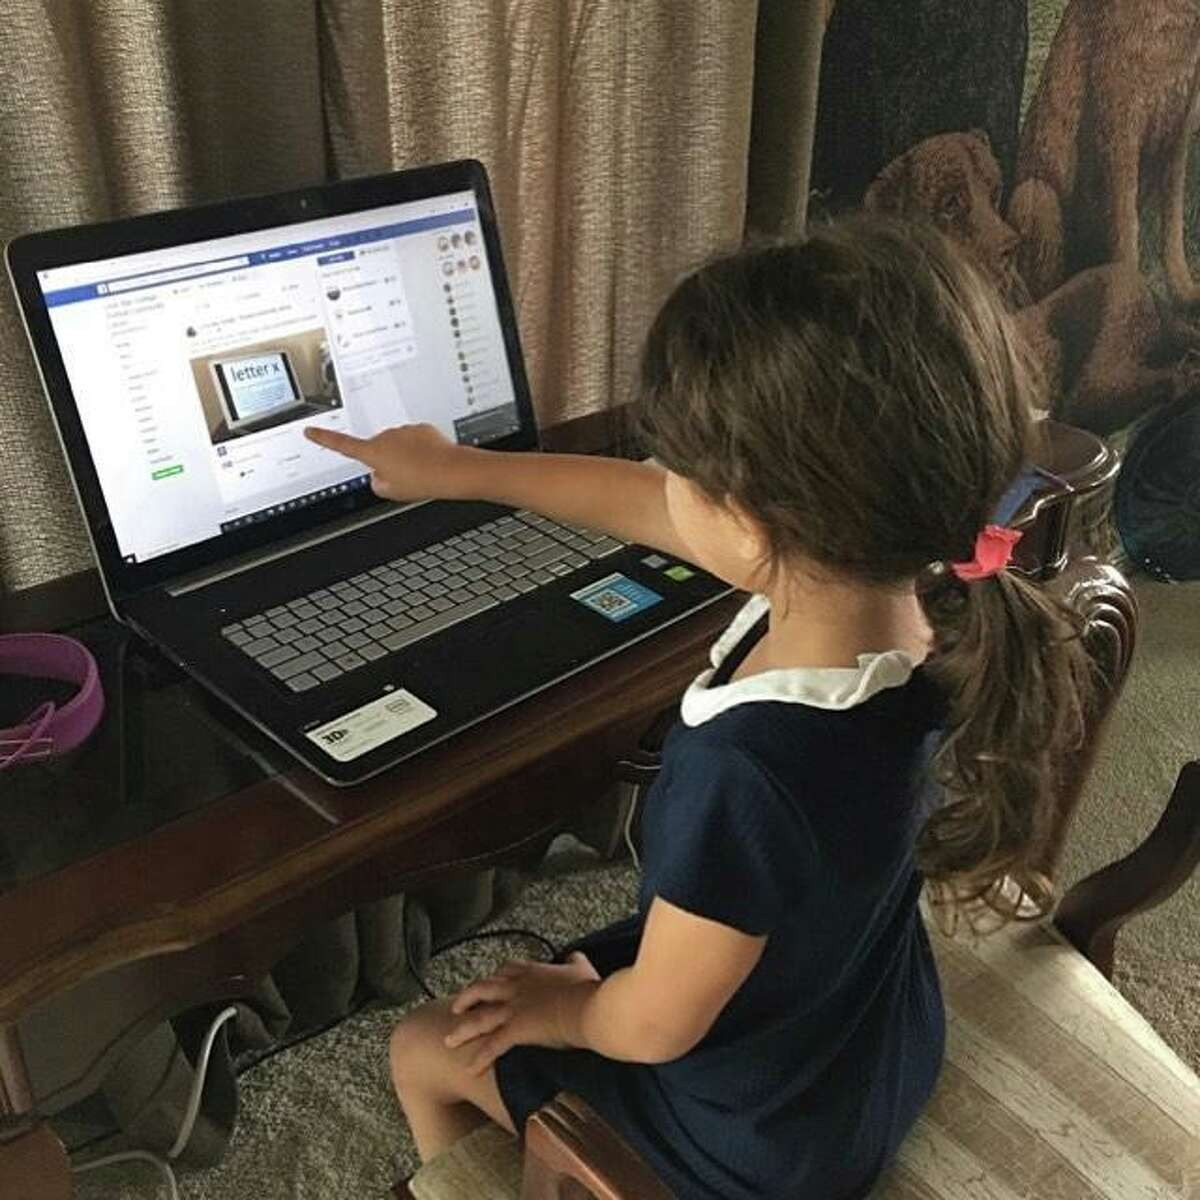 A patron of LSC-Tomball Community Library continues using online library services at home while the branch is closed due to COVID-19.